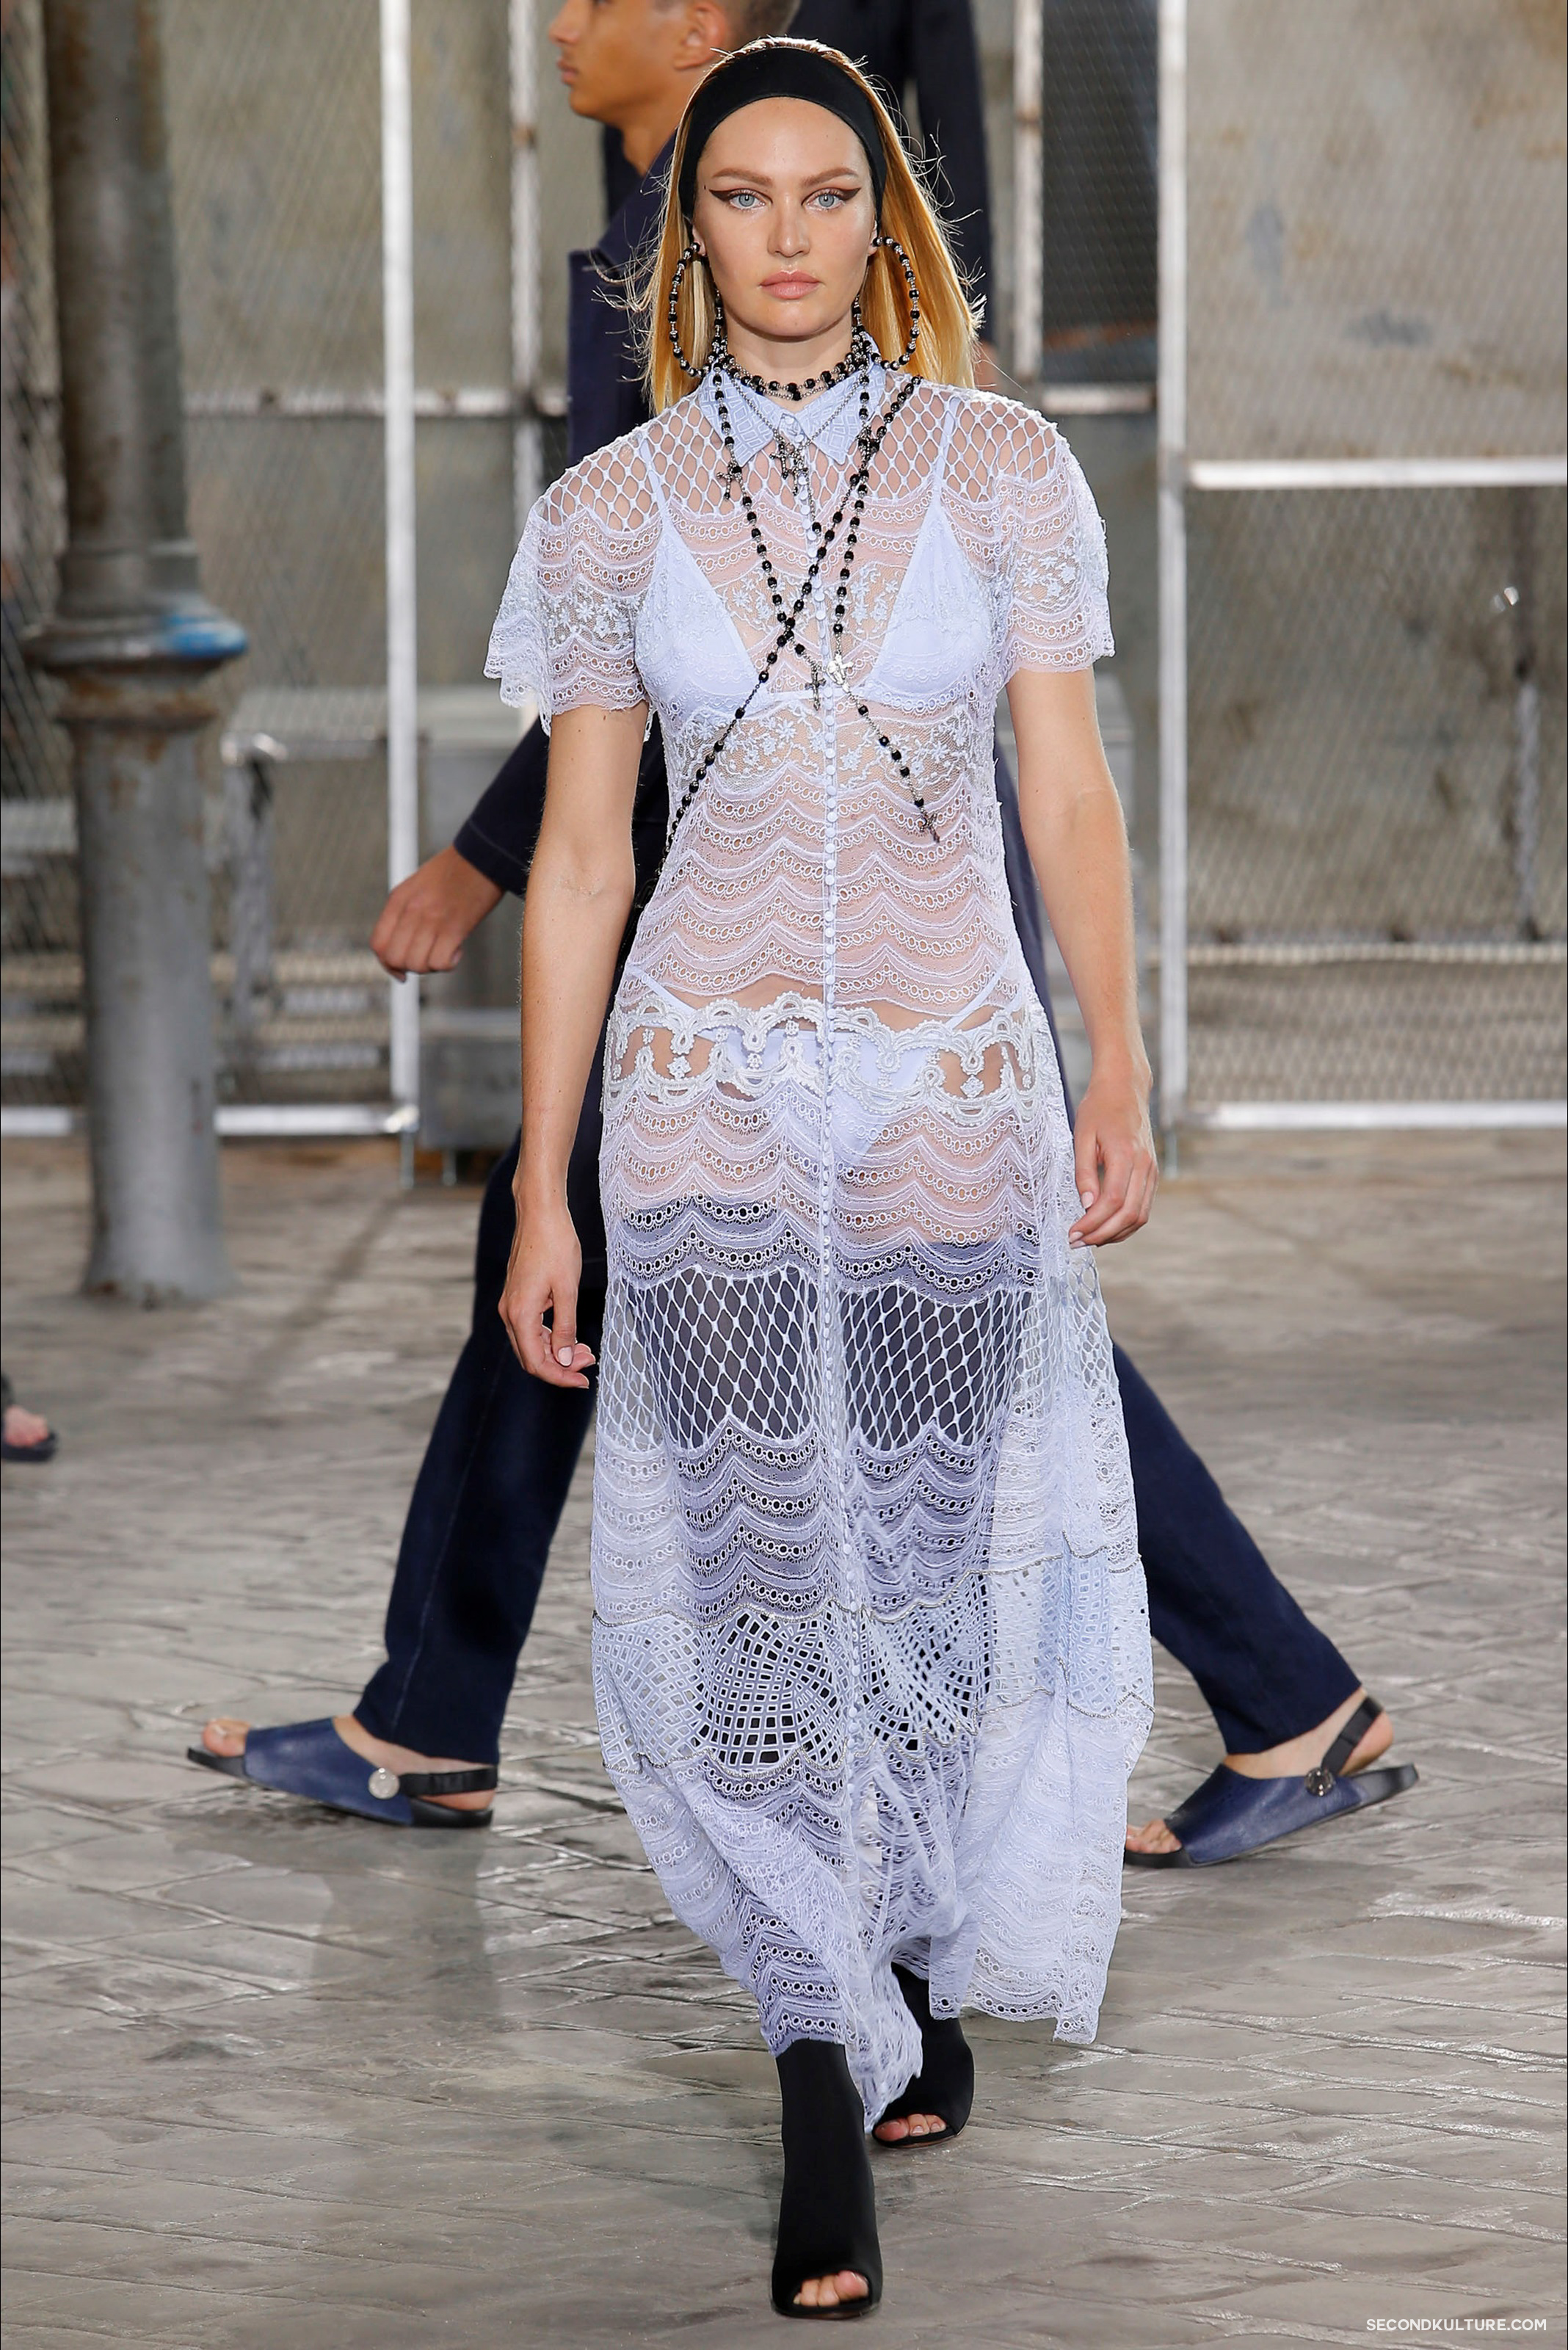 Givenchy Spring Summer 2016 Menswear Jesus Religion Chain Runway Show Look 36